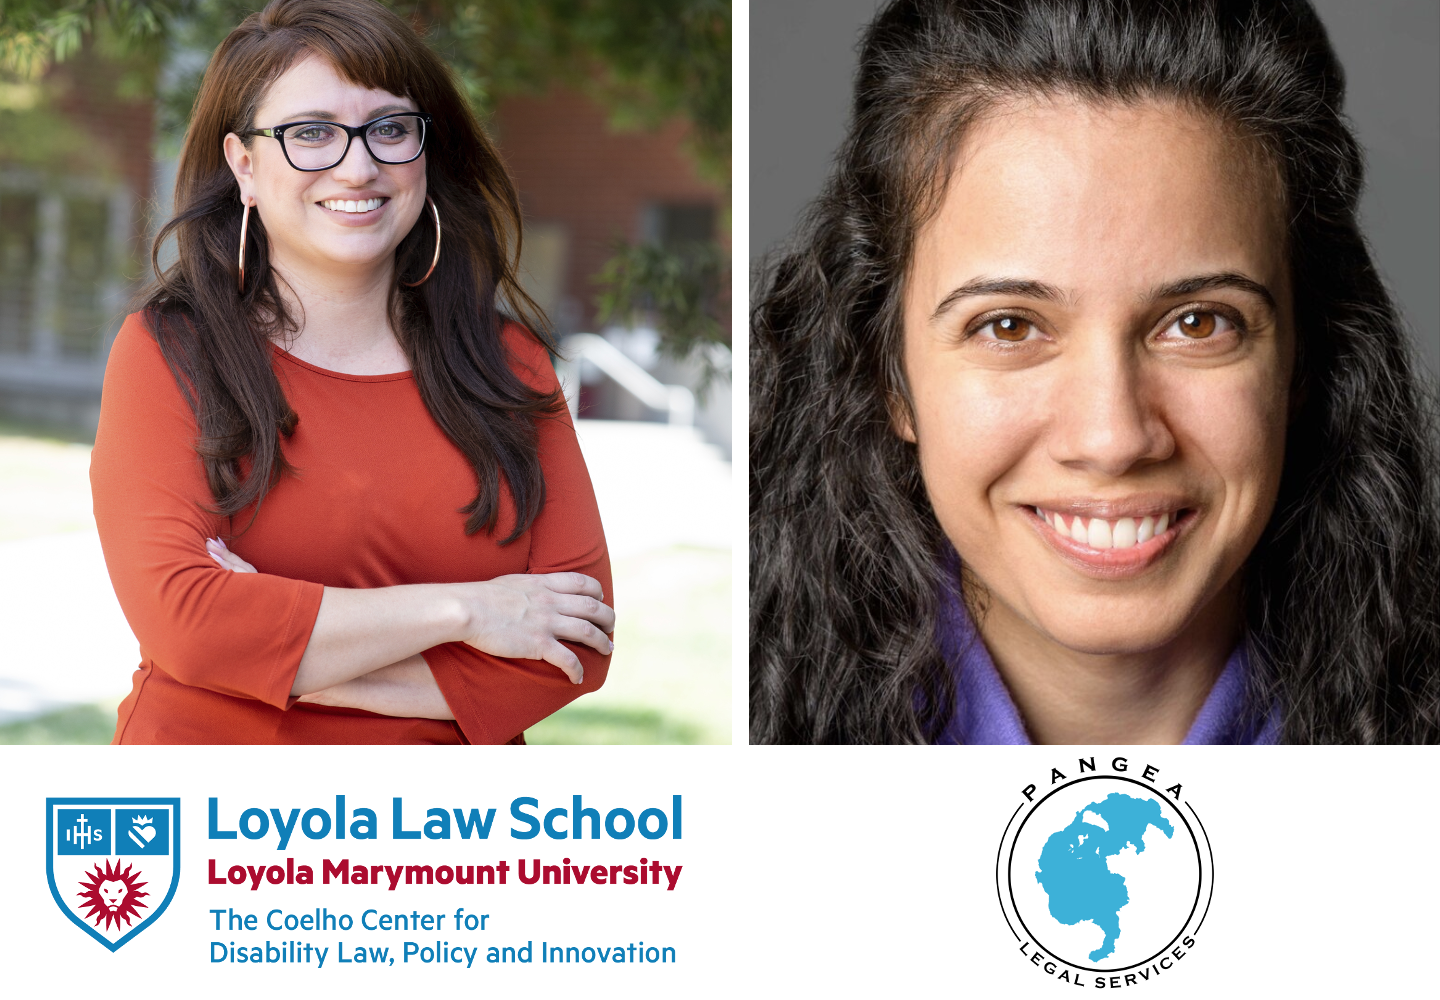 Headshots of Katherine Perez and Roxana Moussavian, above the words 'The Coehlo Center for Disability Law, Policy, and Innovation' and 'Pangea Legal Services'